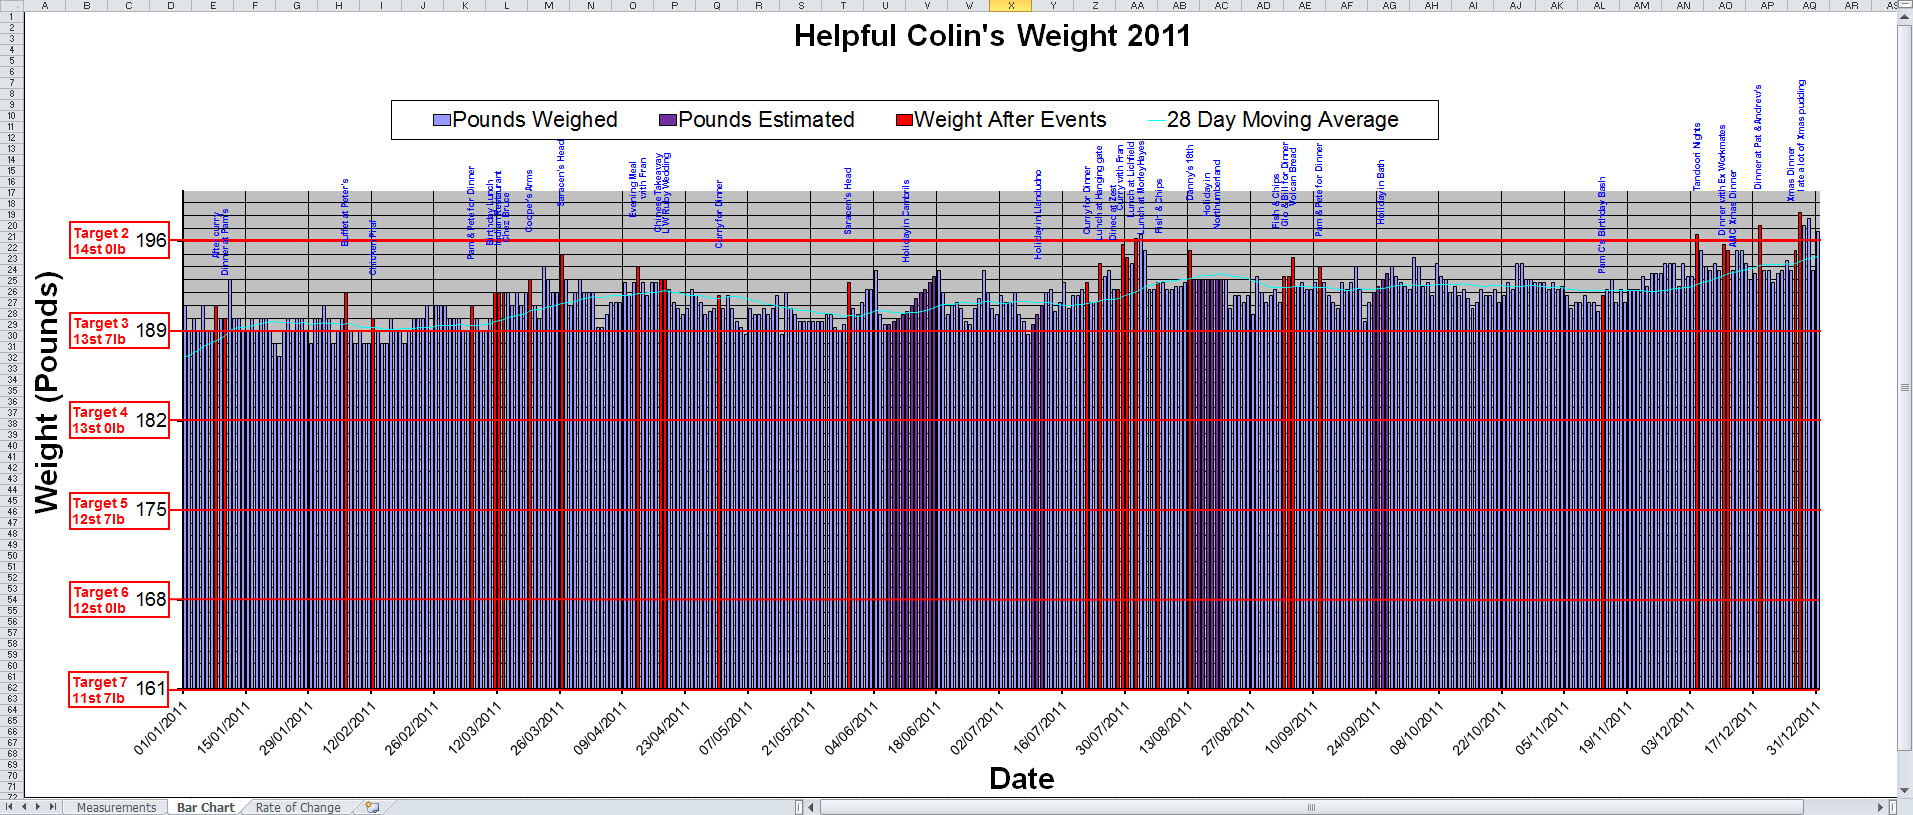 Excel Templates for Body Weight Records   Helpful Colin Excel Graph of Helpful Colin s Weight 2011   Select it to enlarge it